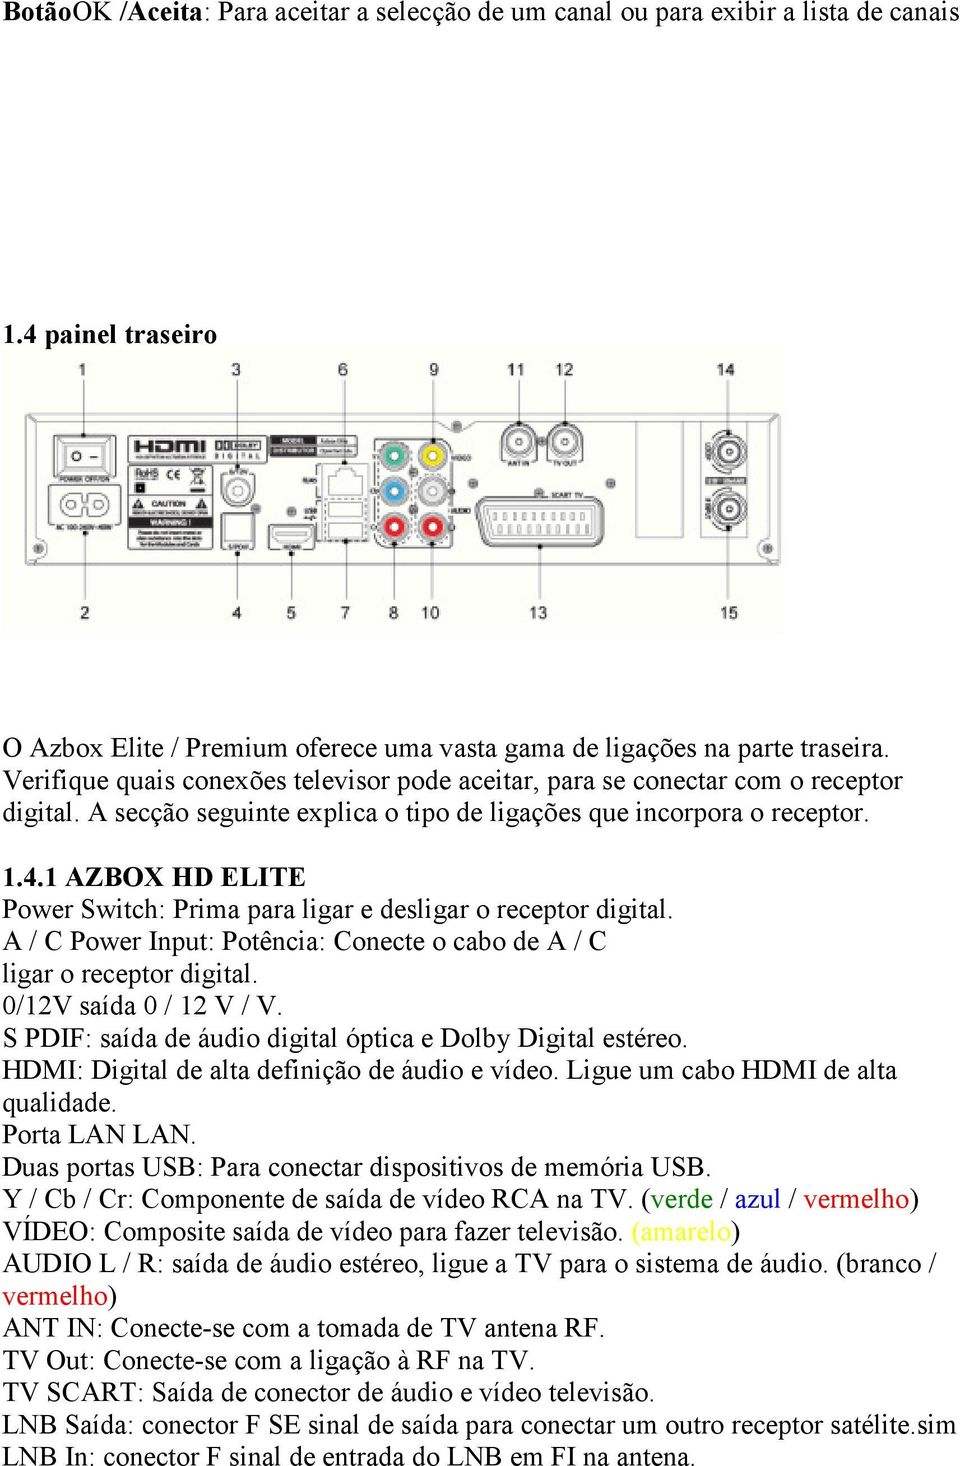 1 AZBOX HD ELITE Power Switch: Prima para ligar e desligar o receptor digital. A / C Power Input: Potência: Conecte o cabo de A / C ligar o receptor digital. 0/12V saída 0 / 12 V / V.